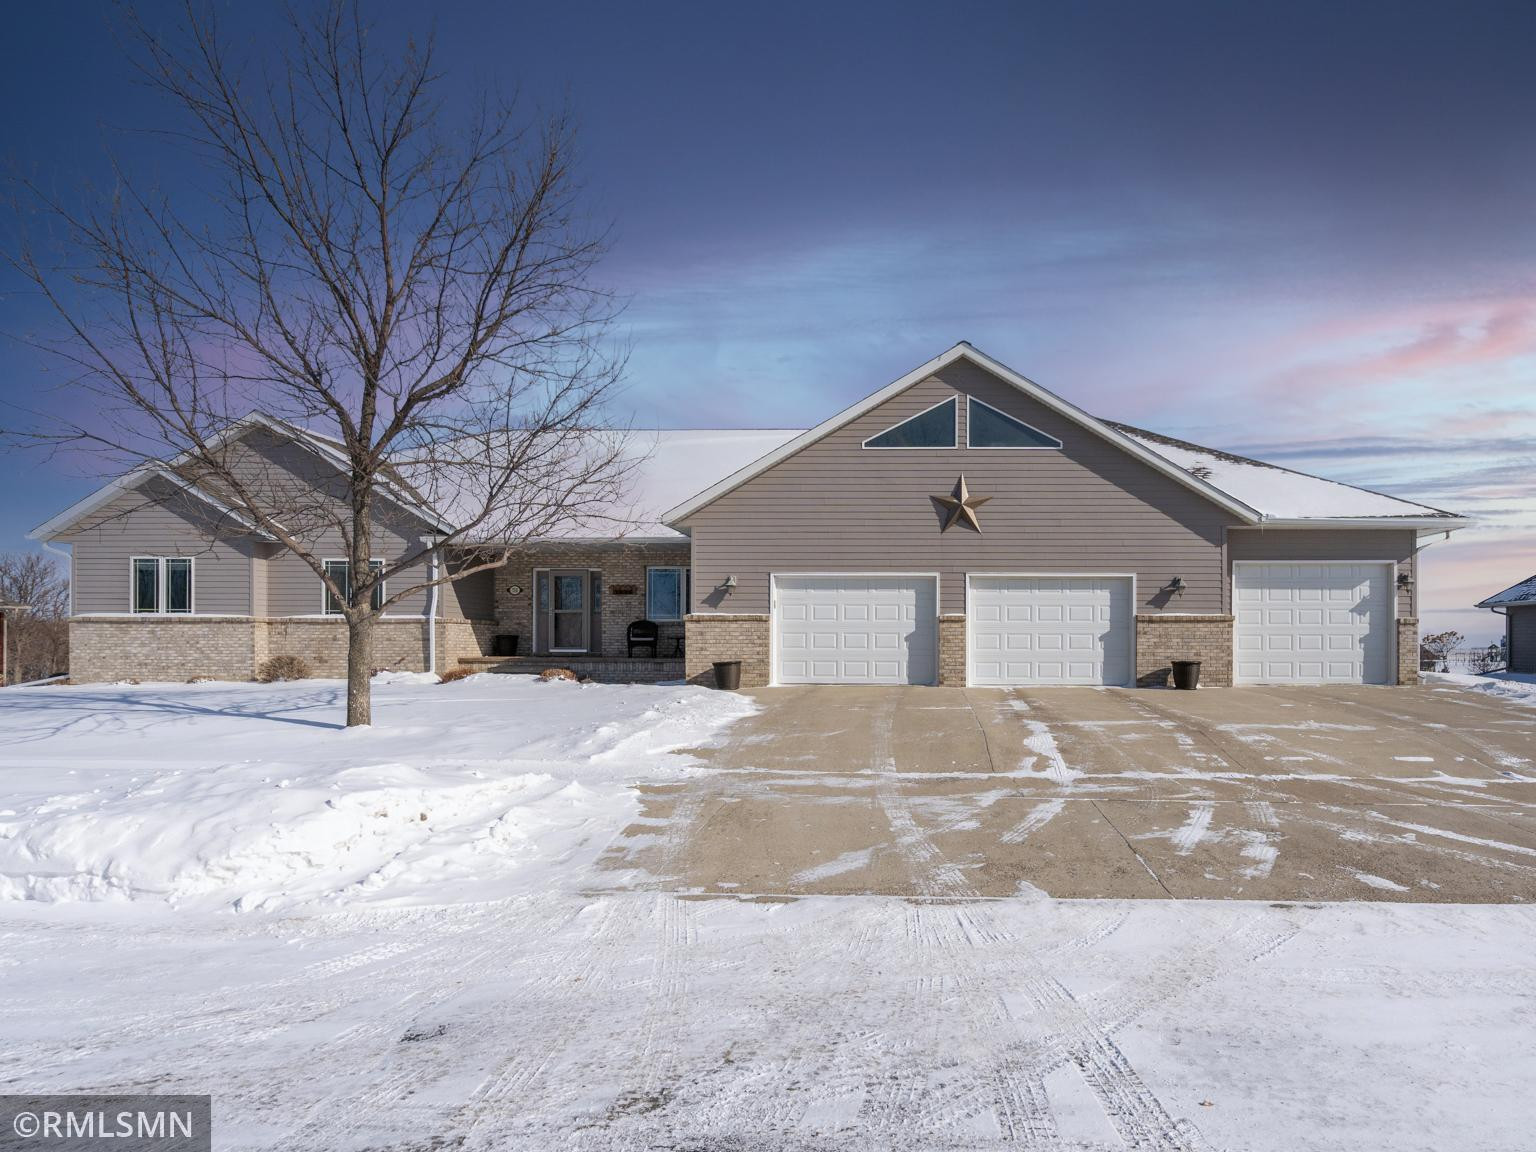 WOW! A three stall garage PLUS bonus room AND extra storage space on top!